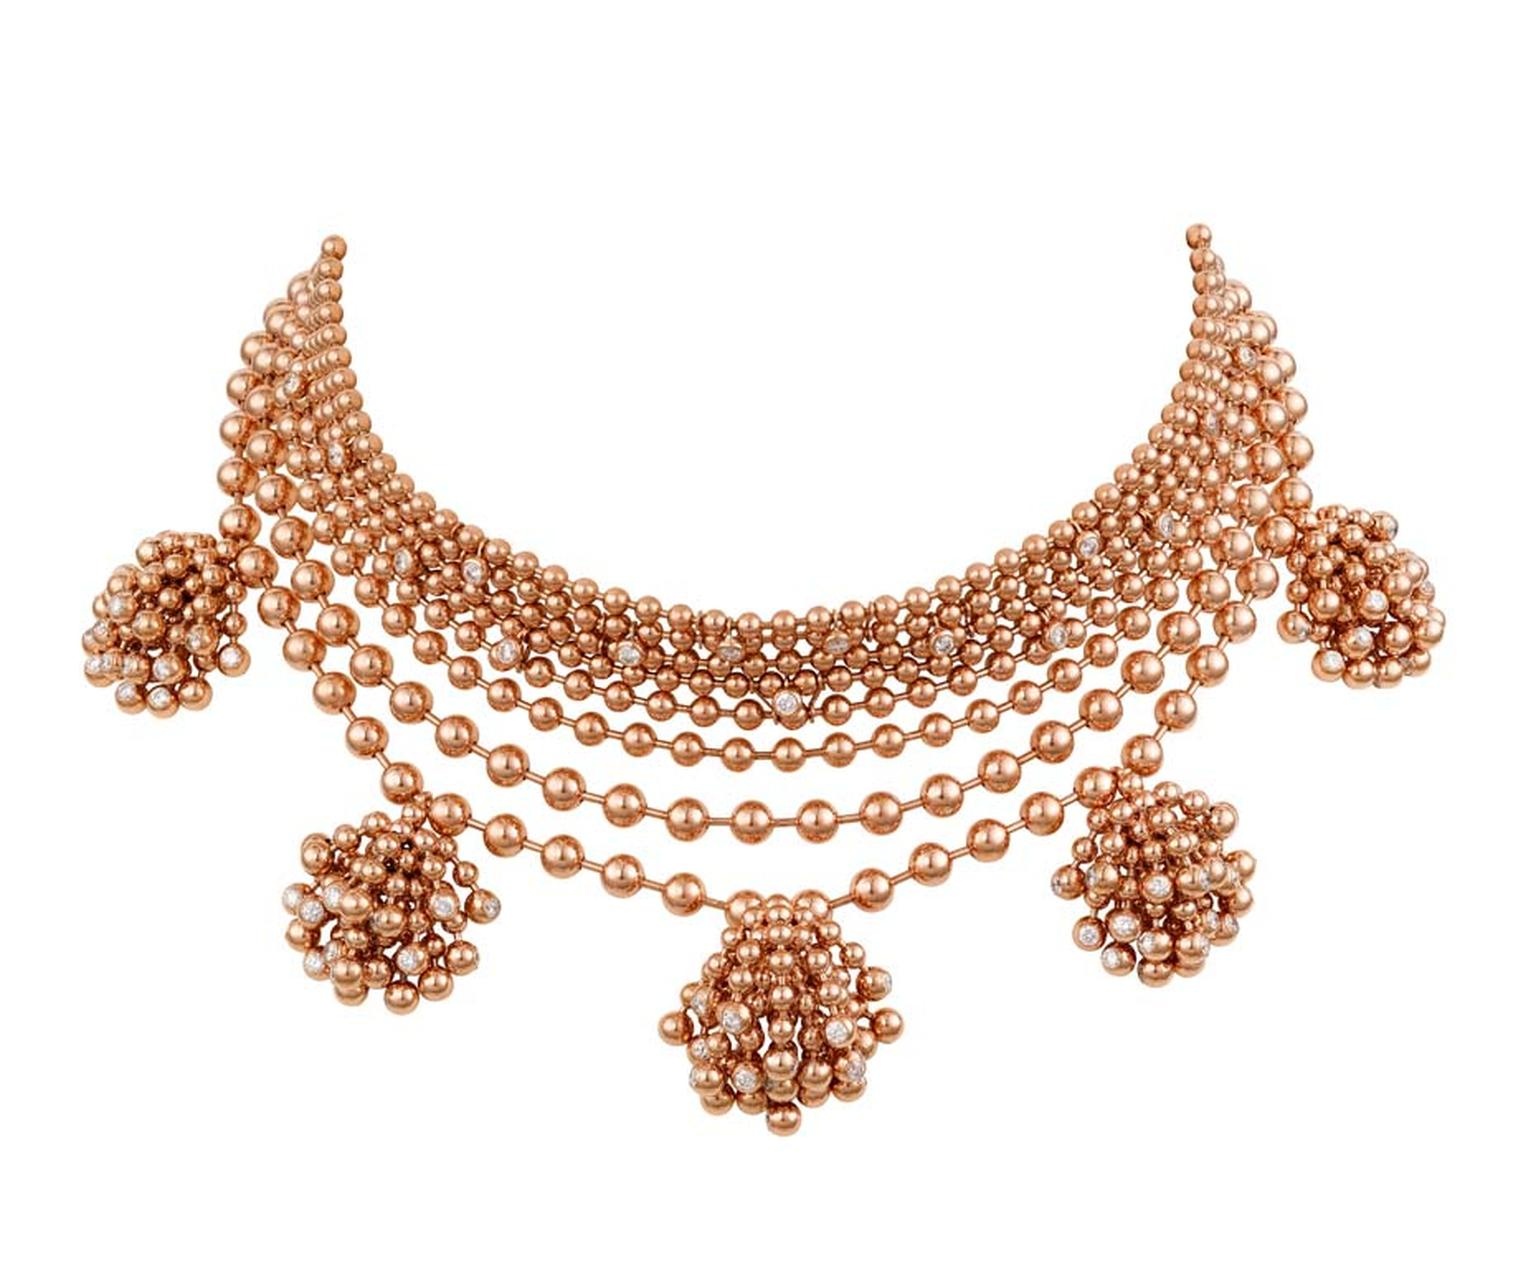 The Cartier rose gold and diamond Paris Nouvelle Vague necklace worn by Rihanna to the 2015 Met Gala in New York.